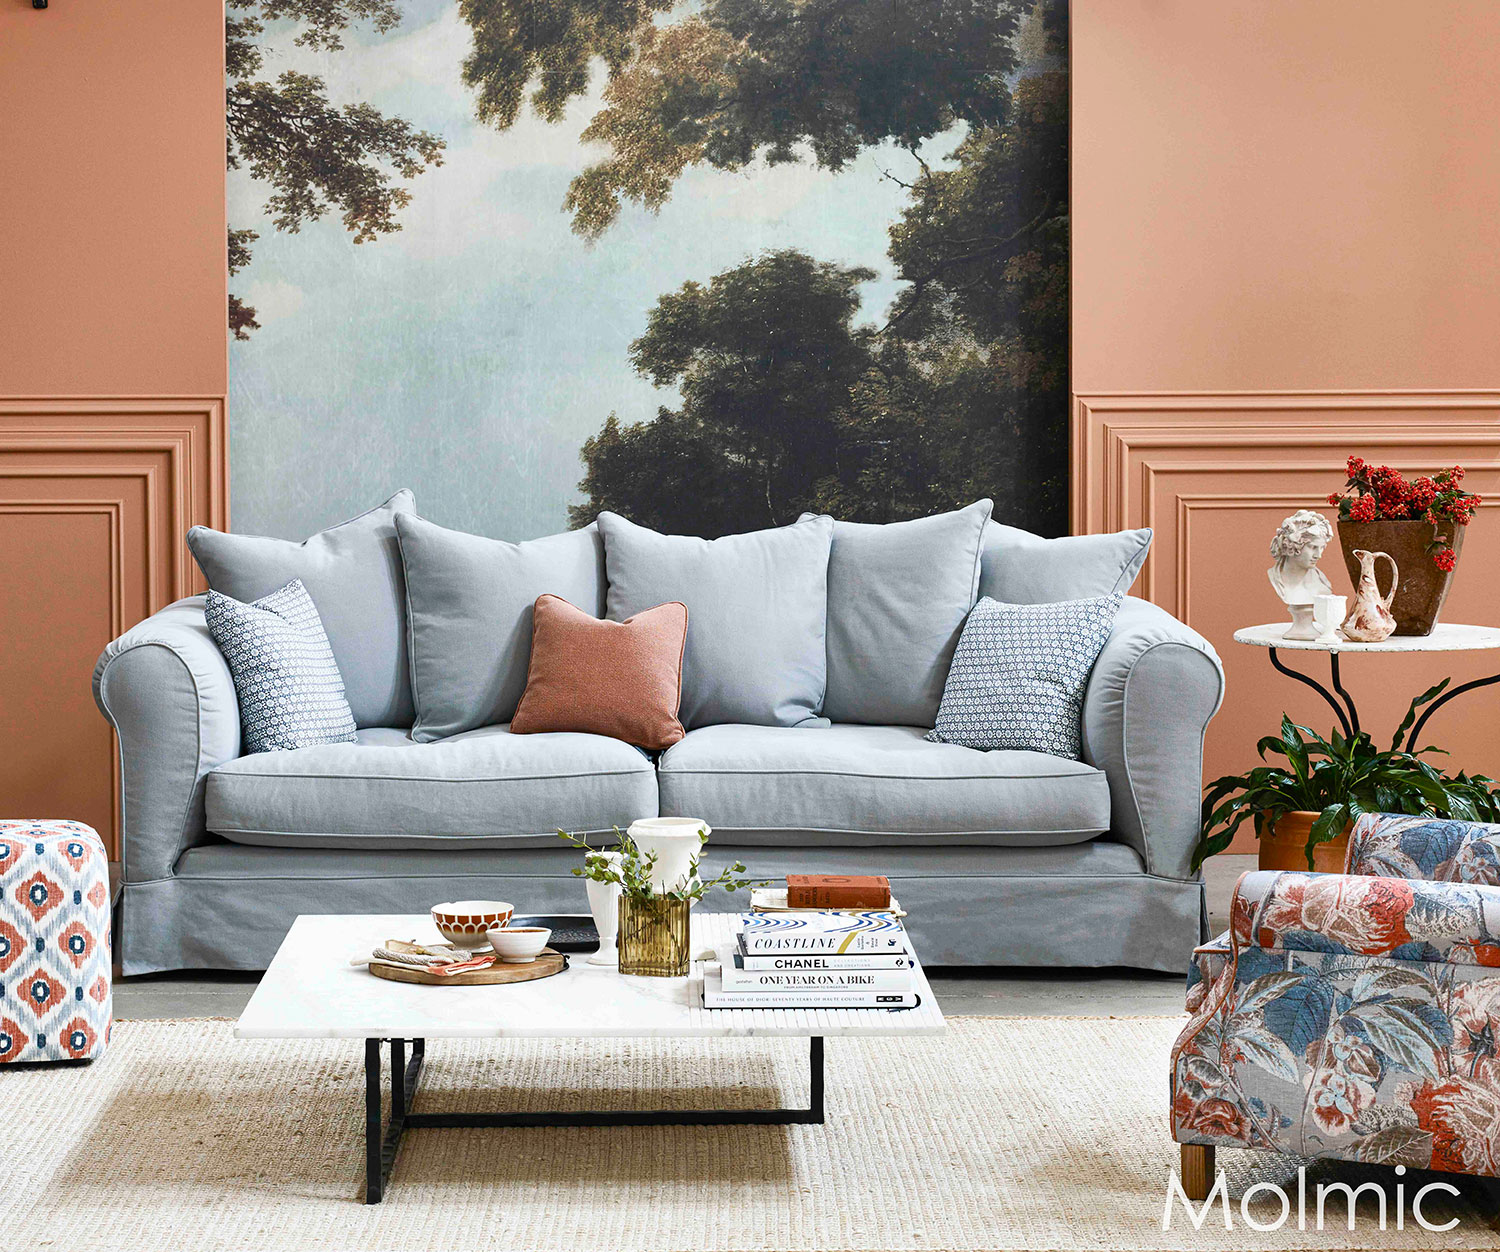 Molmic's iconic scatter cushion design 'Loft' 4 seater sofa in Tahoe Mist fabric